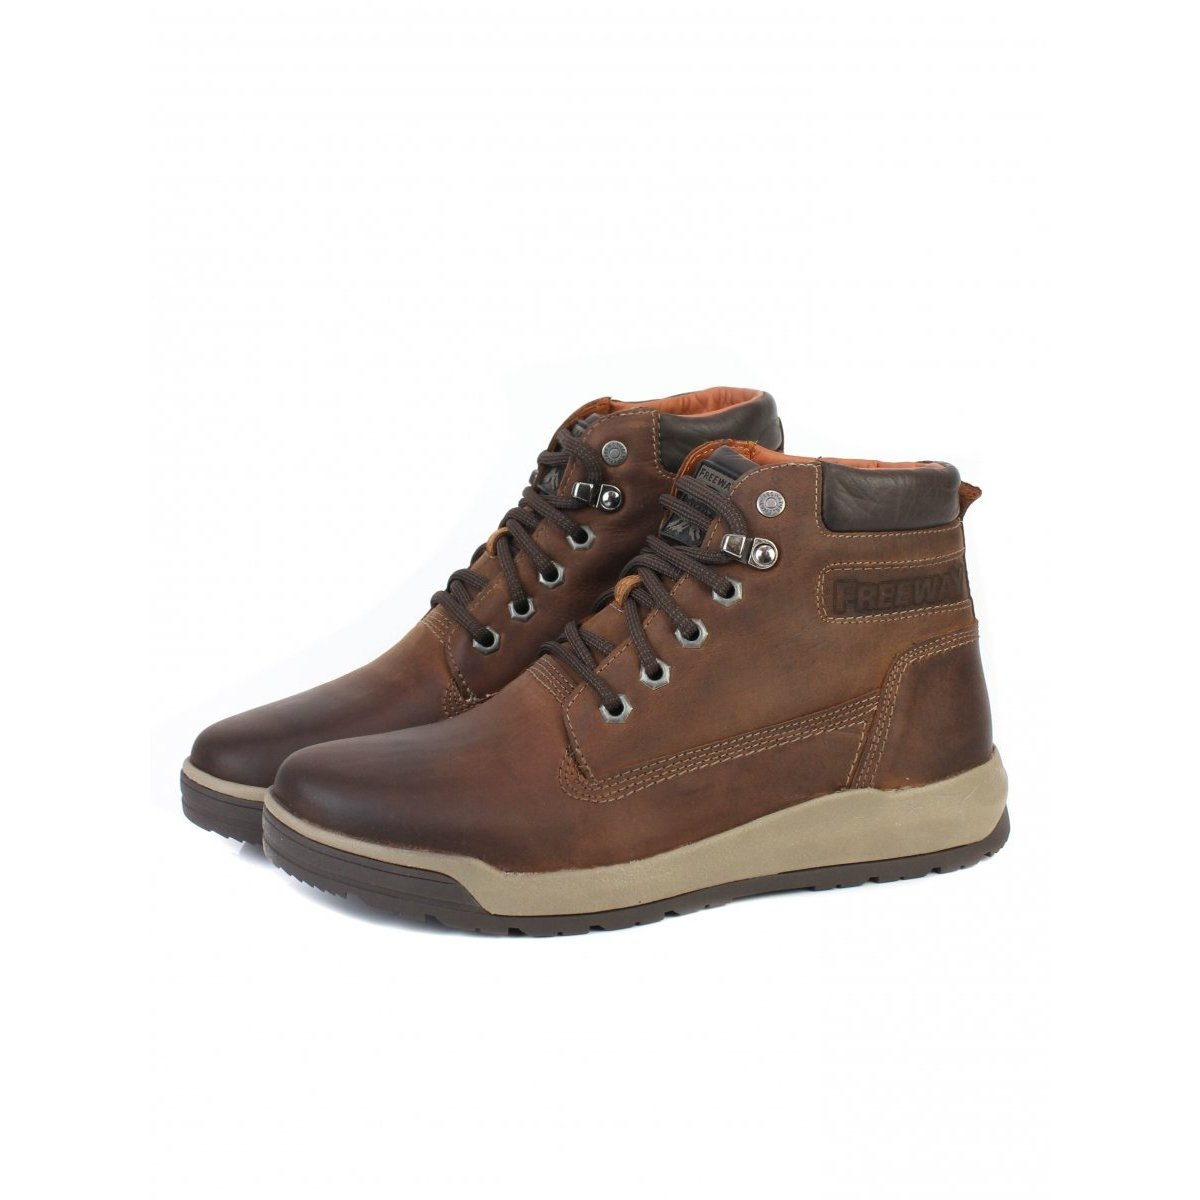 Freeway 3113 Horse Bota Casual Horse Rover Bota Casual Freeway Casual Marrom Freeway Rover Marrom Bota 3113 qIFPIAwUx